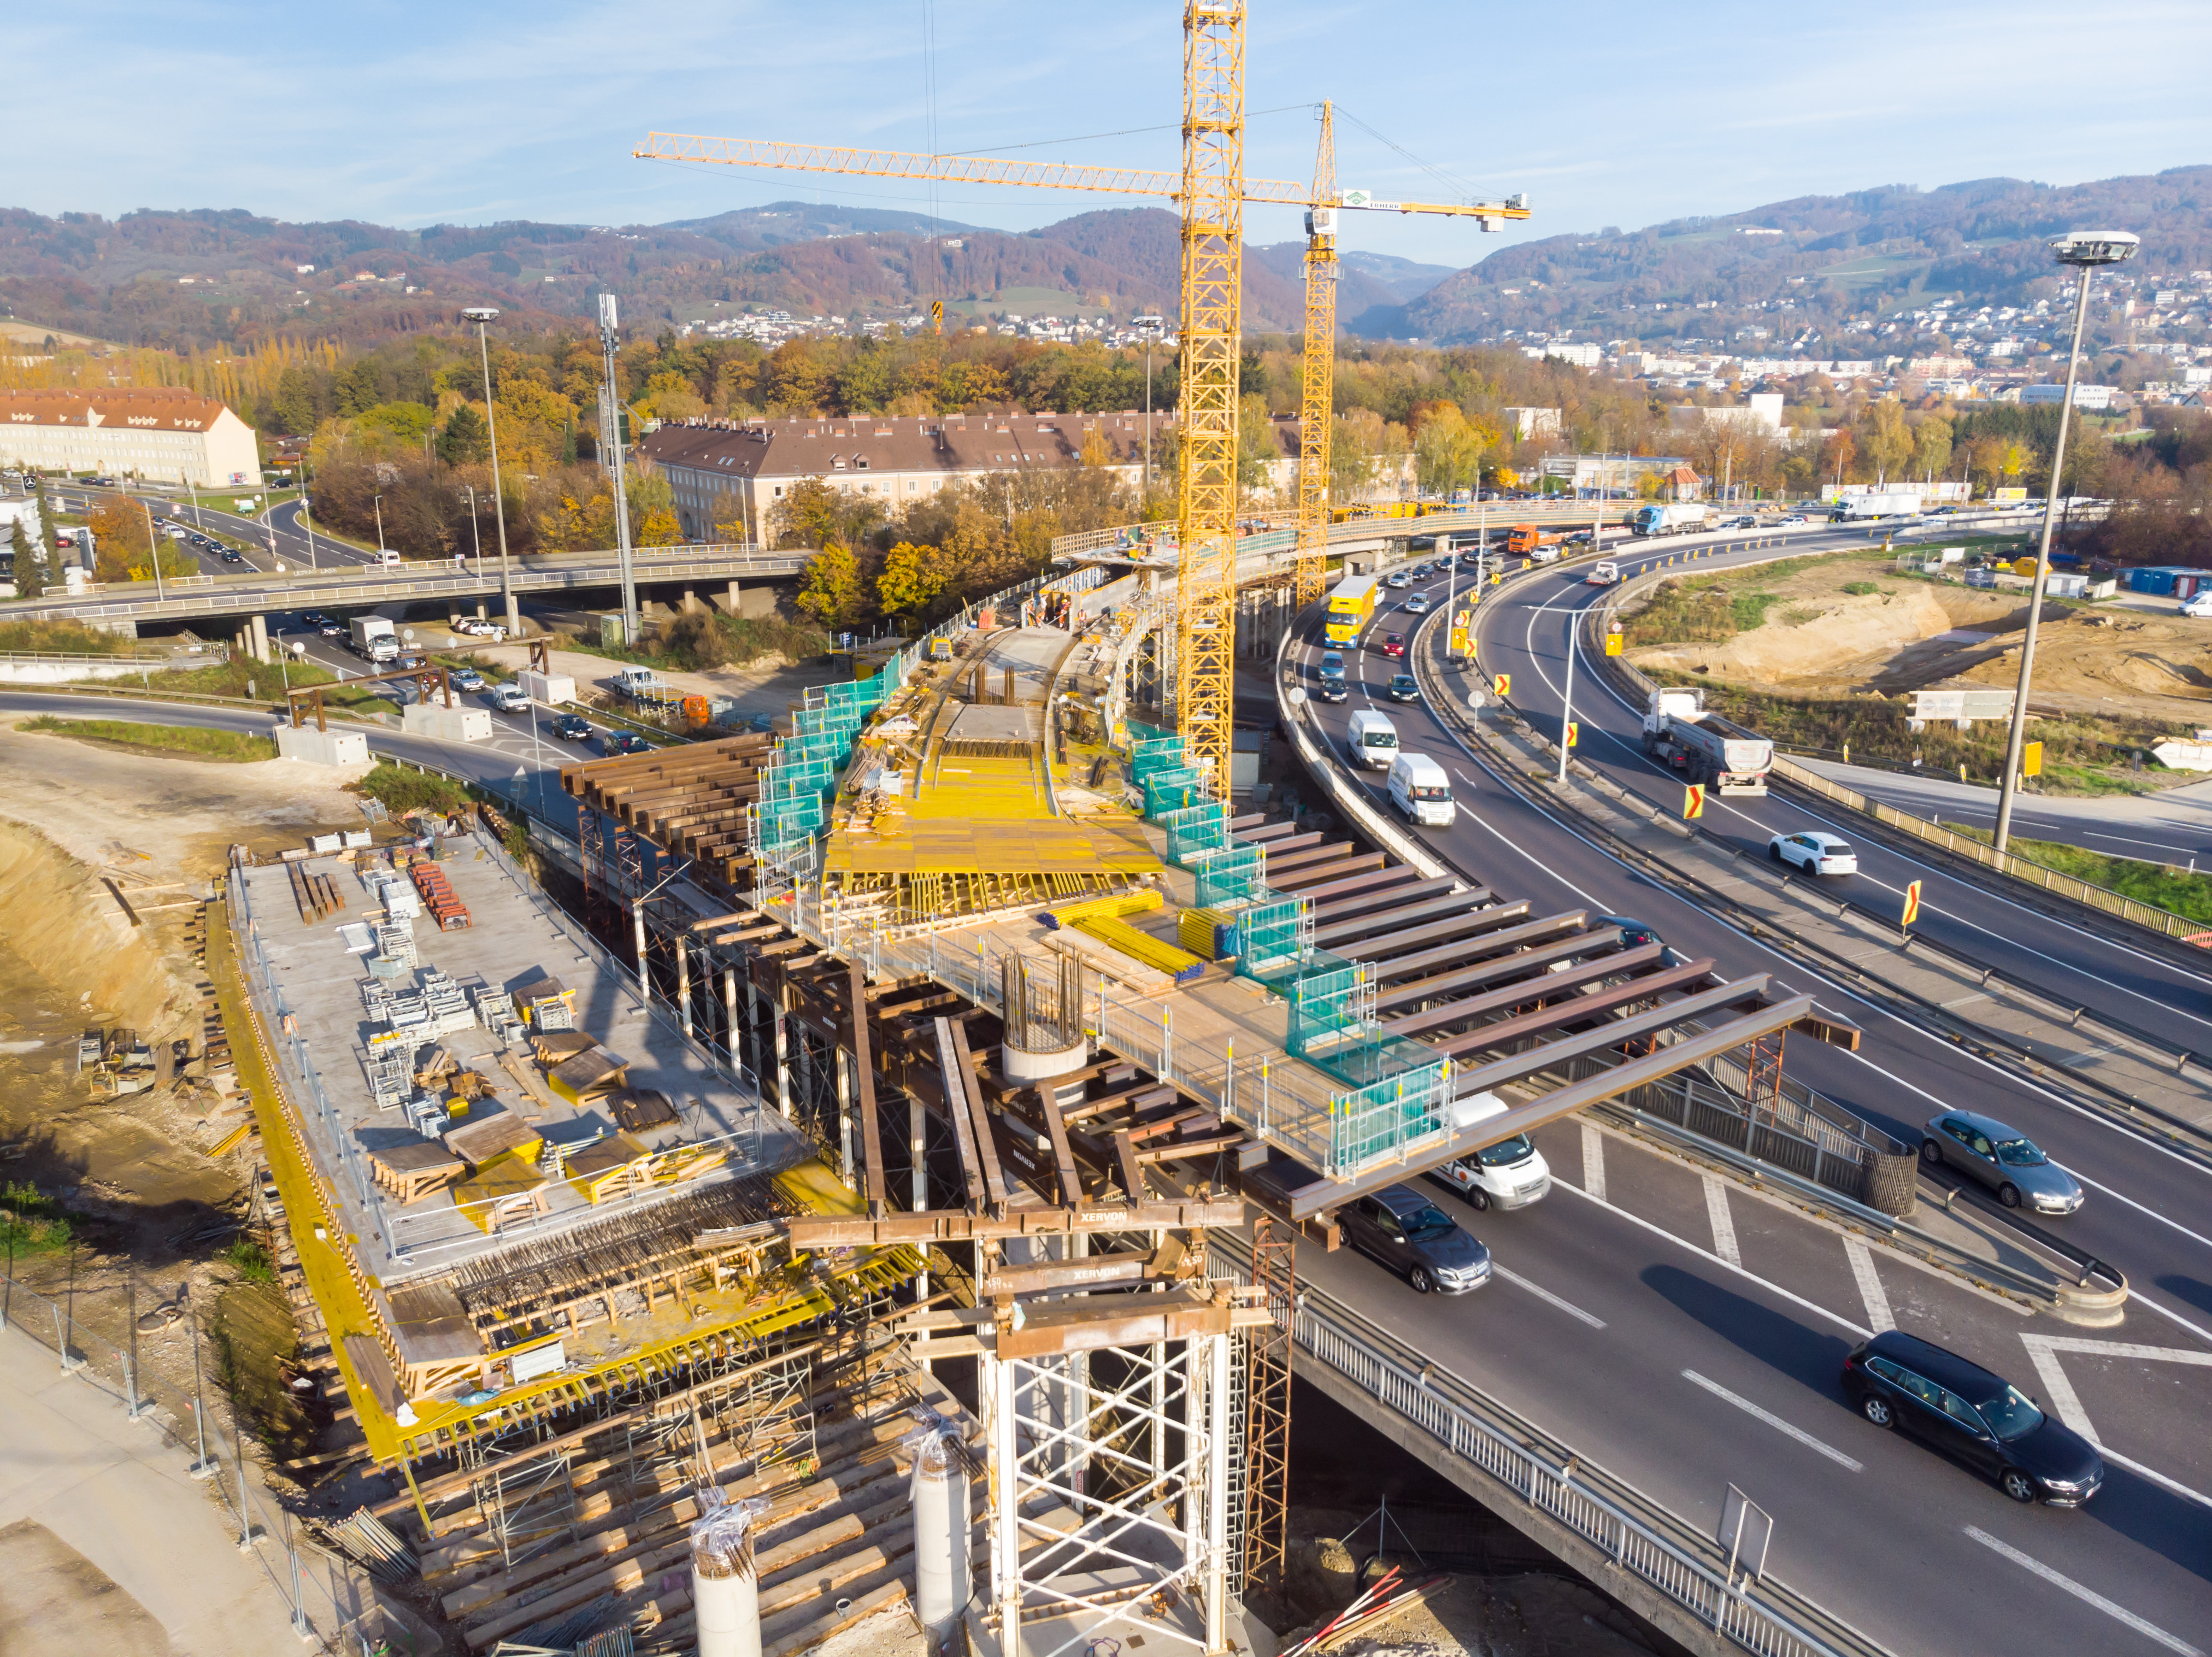 Linz A7 Bypassbrücken  - Construction de routes et de ponts